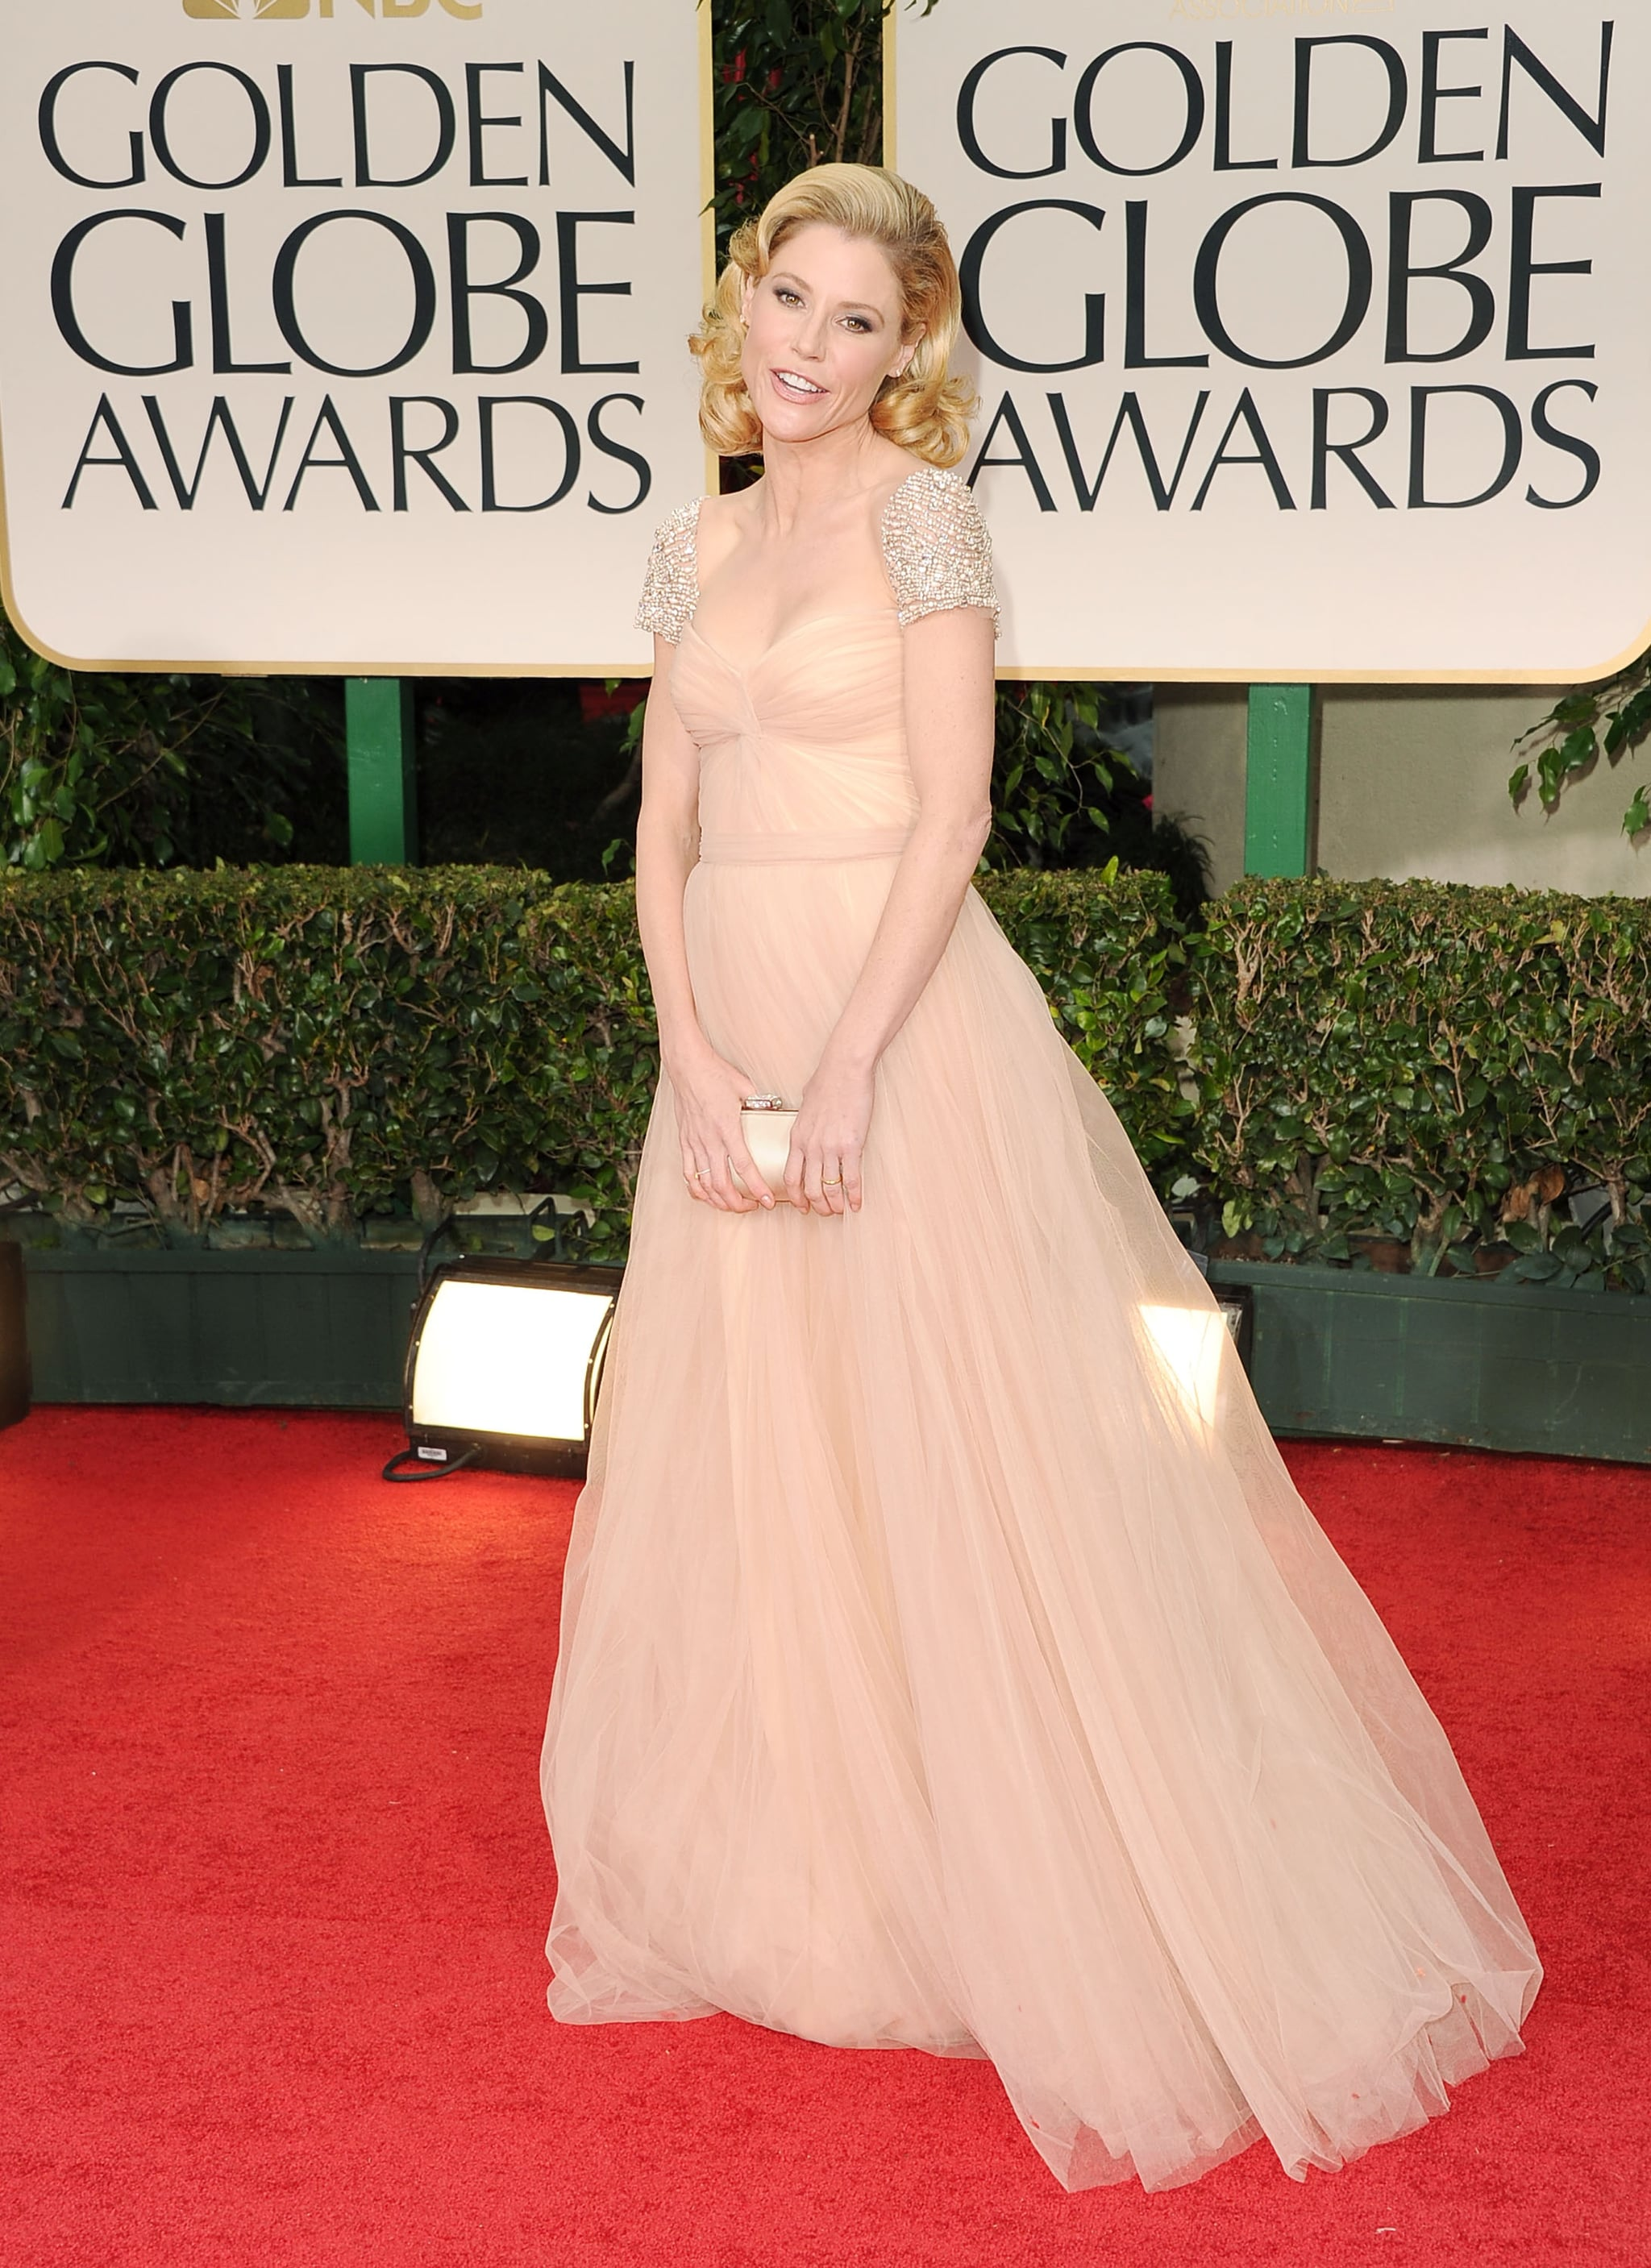 Julie Bowen on the red carpet at the Golden Globes.